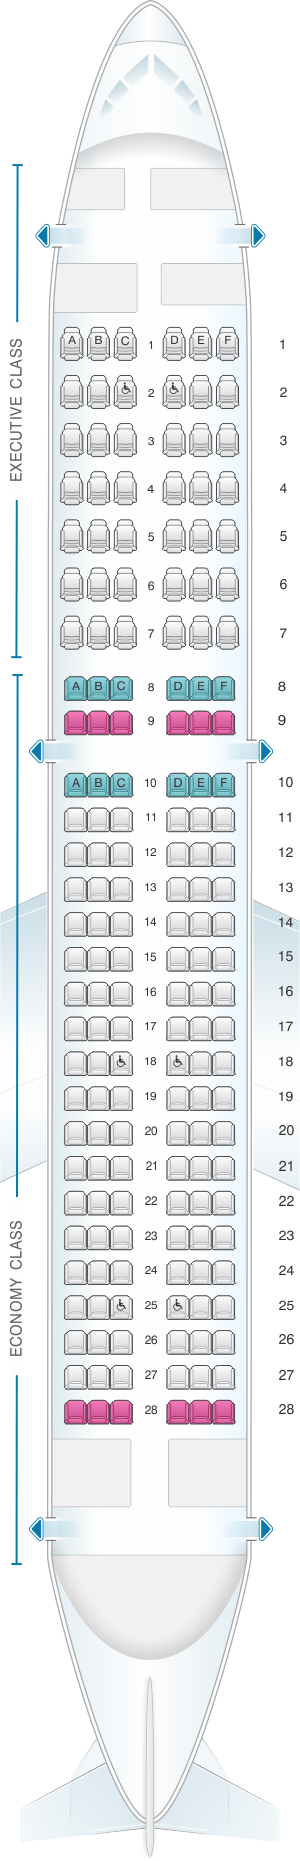 Seat map for TAP Portugal Airbus A320